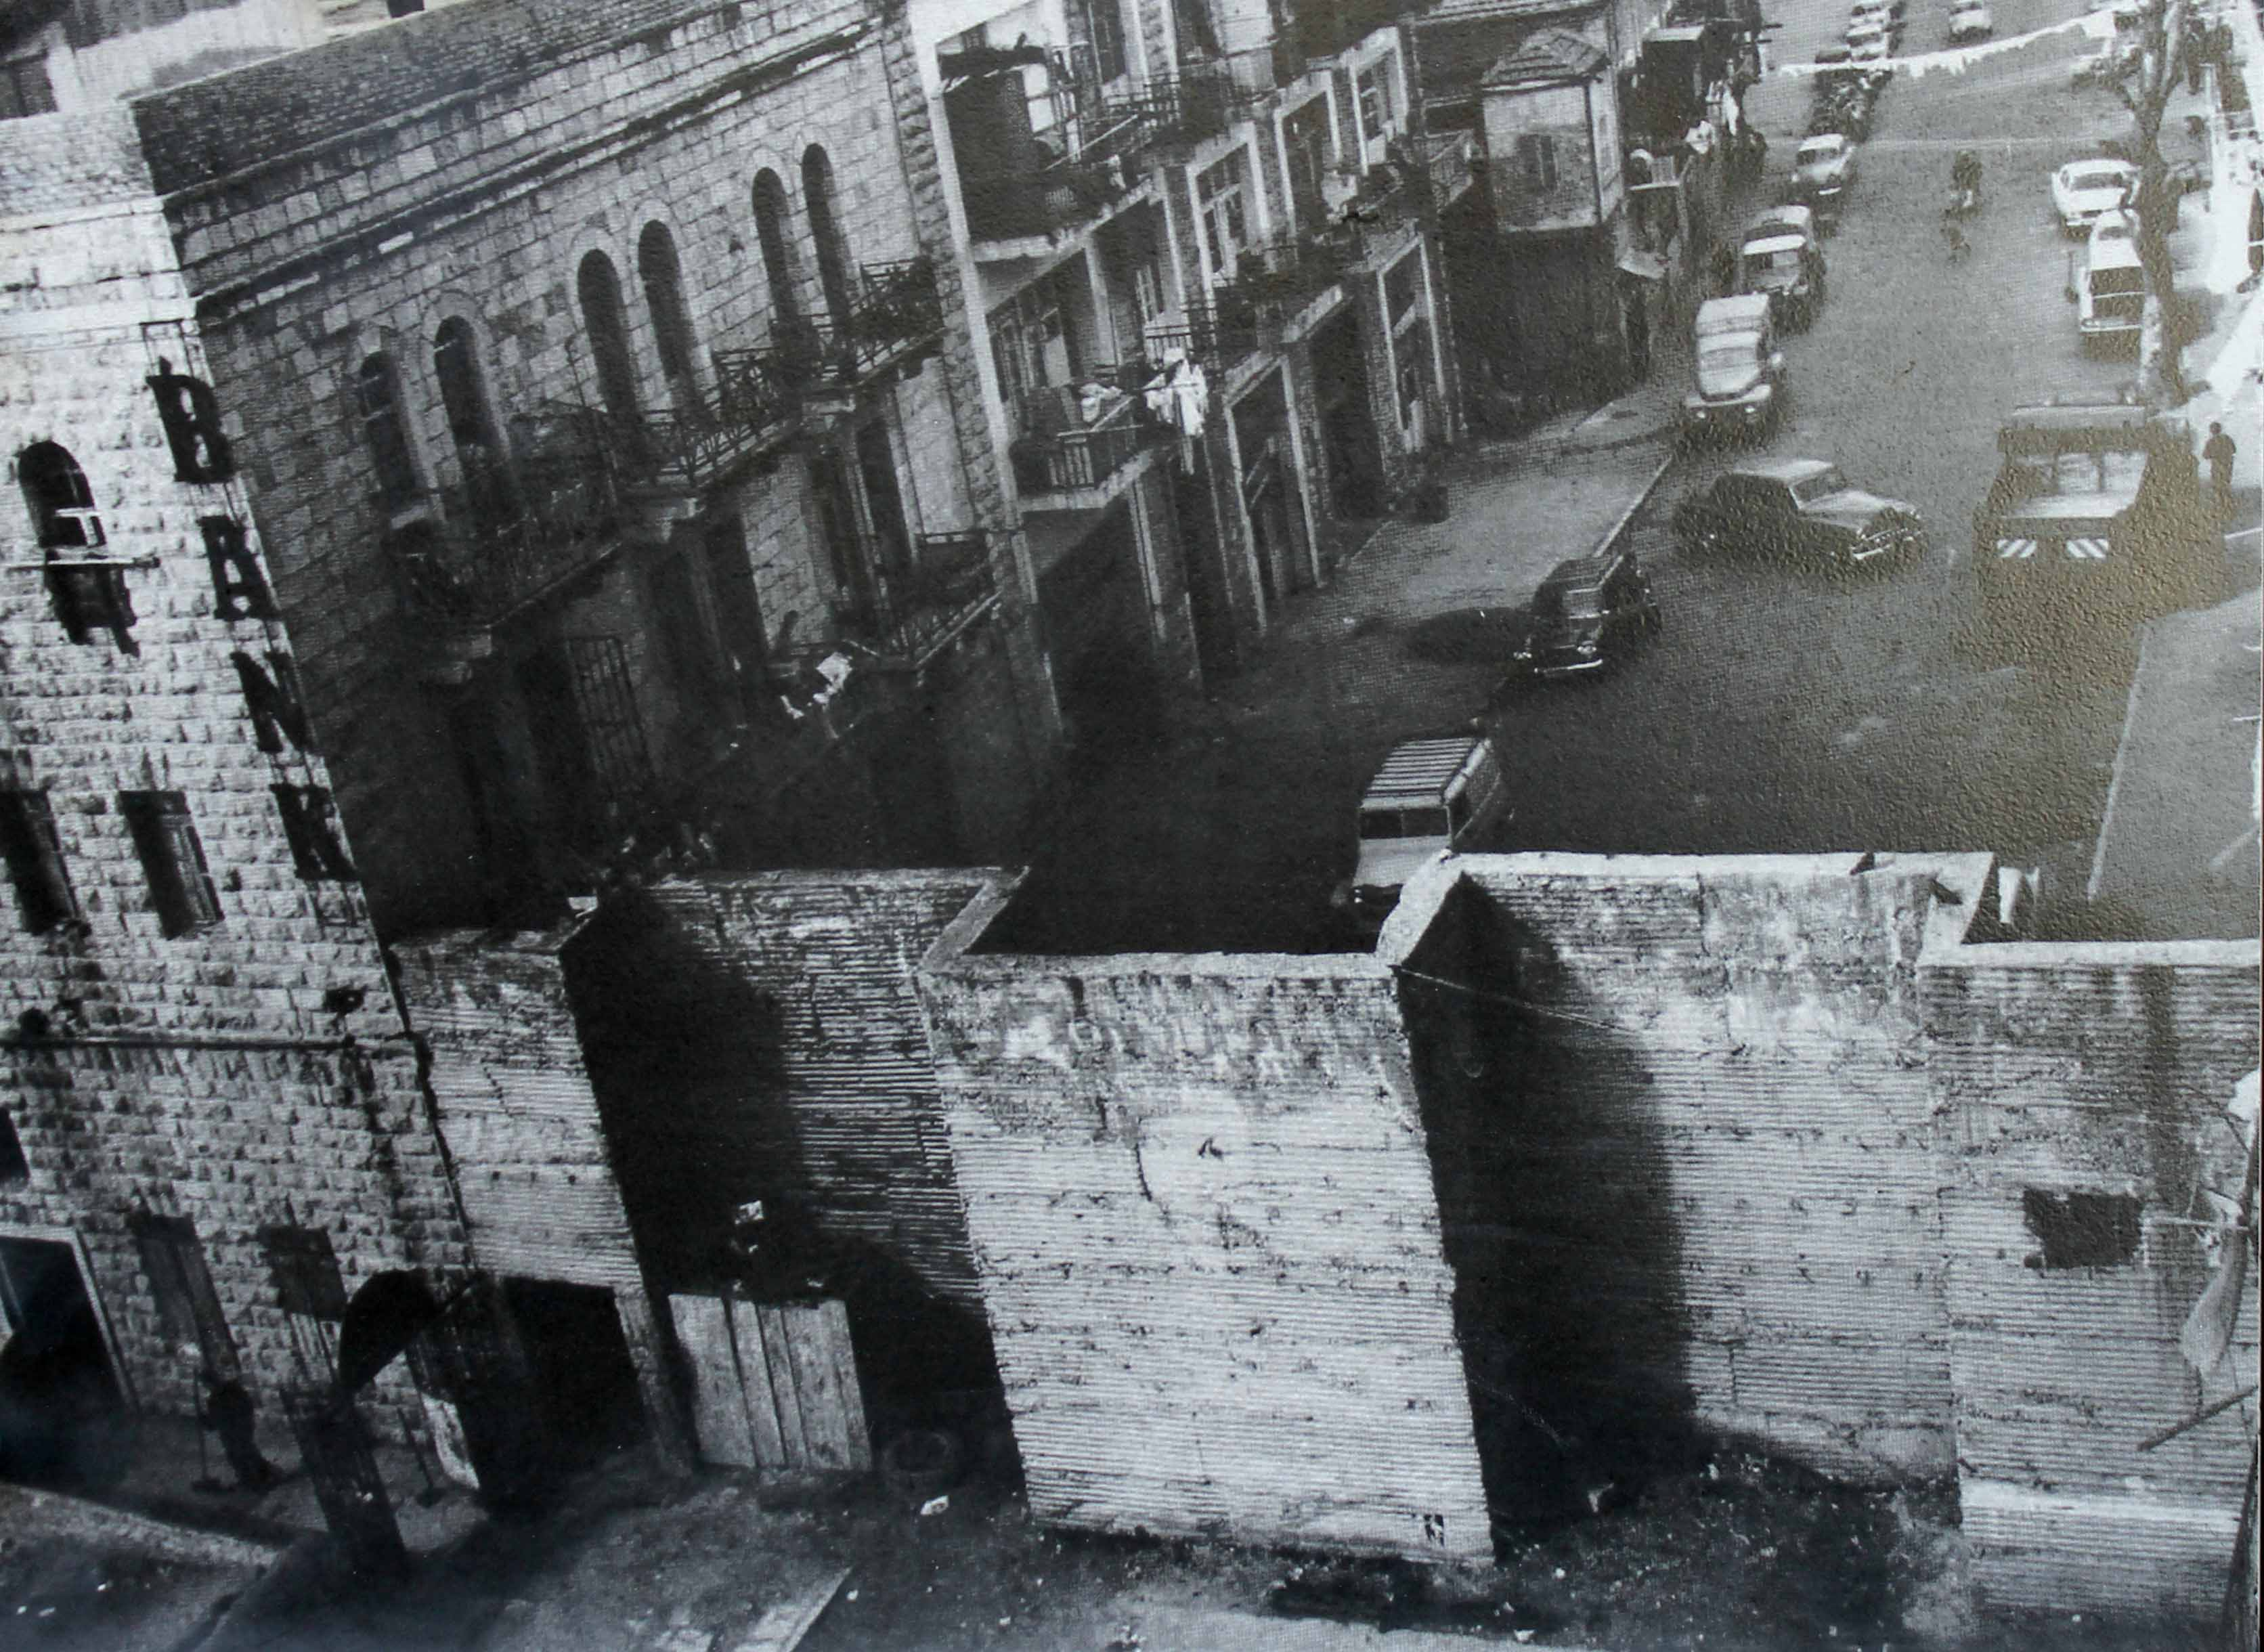 Black and white photo from 1966 showing Jaffa Street dead-ending in a concrete wall